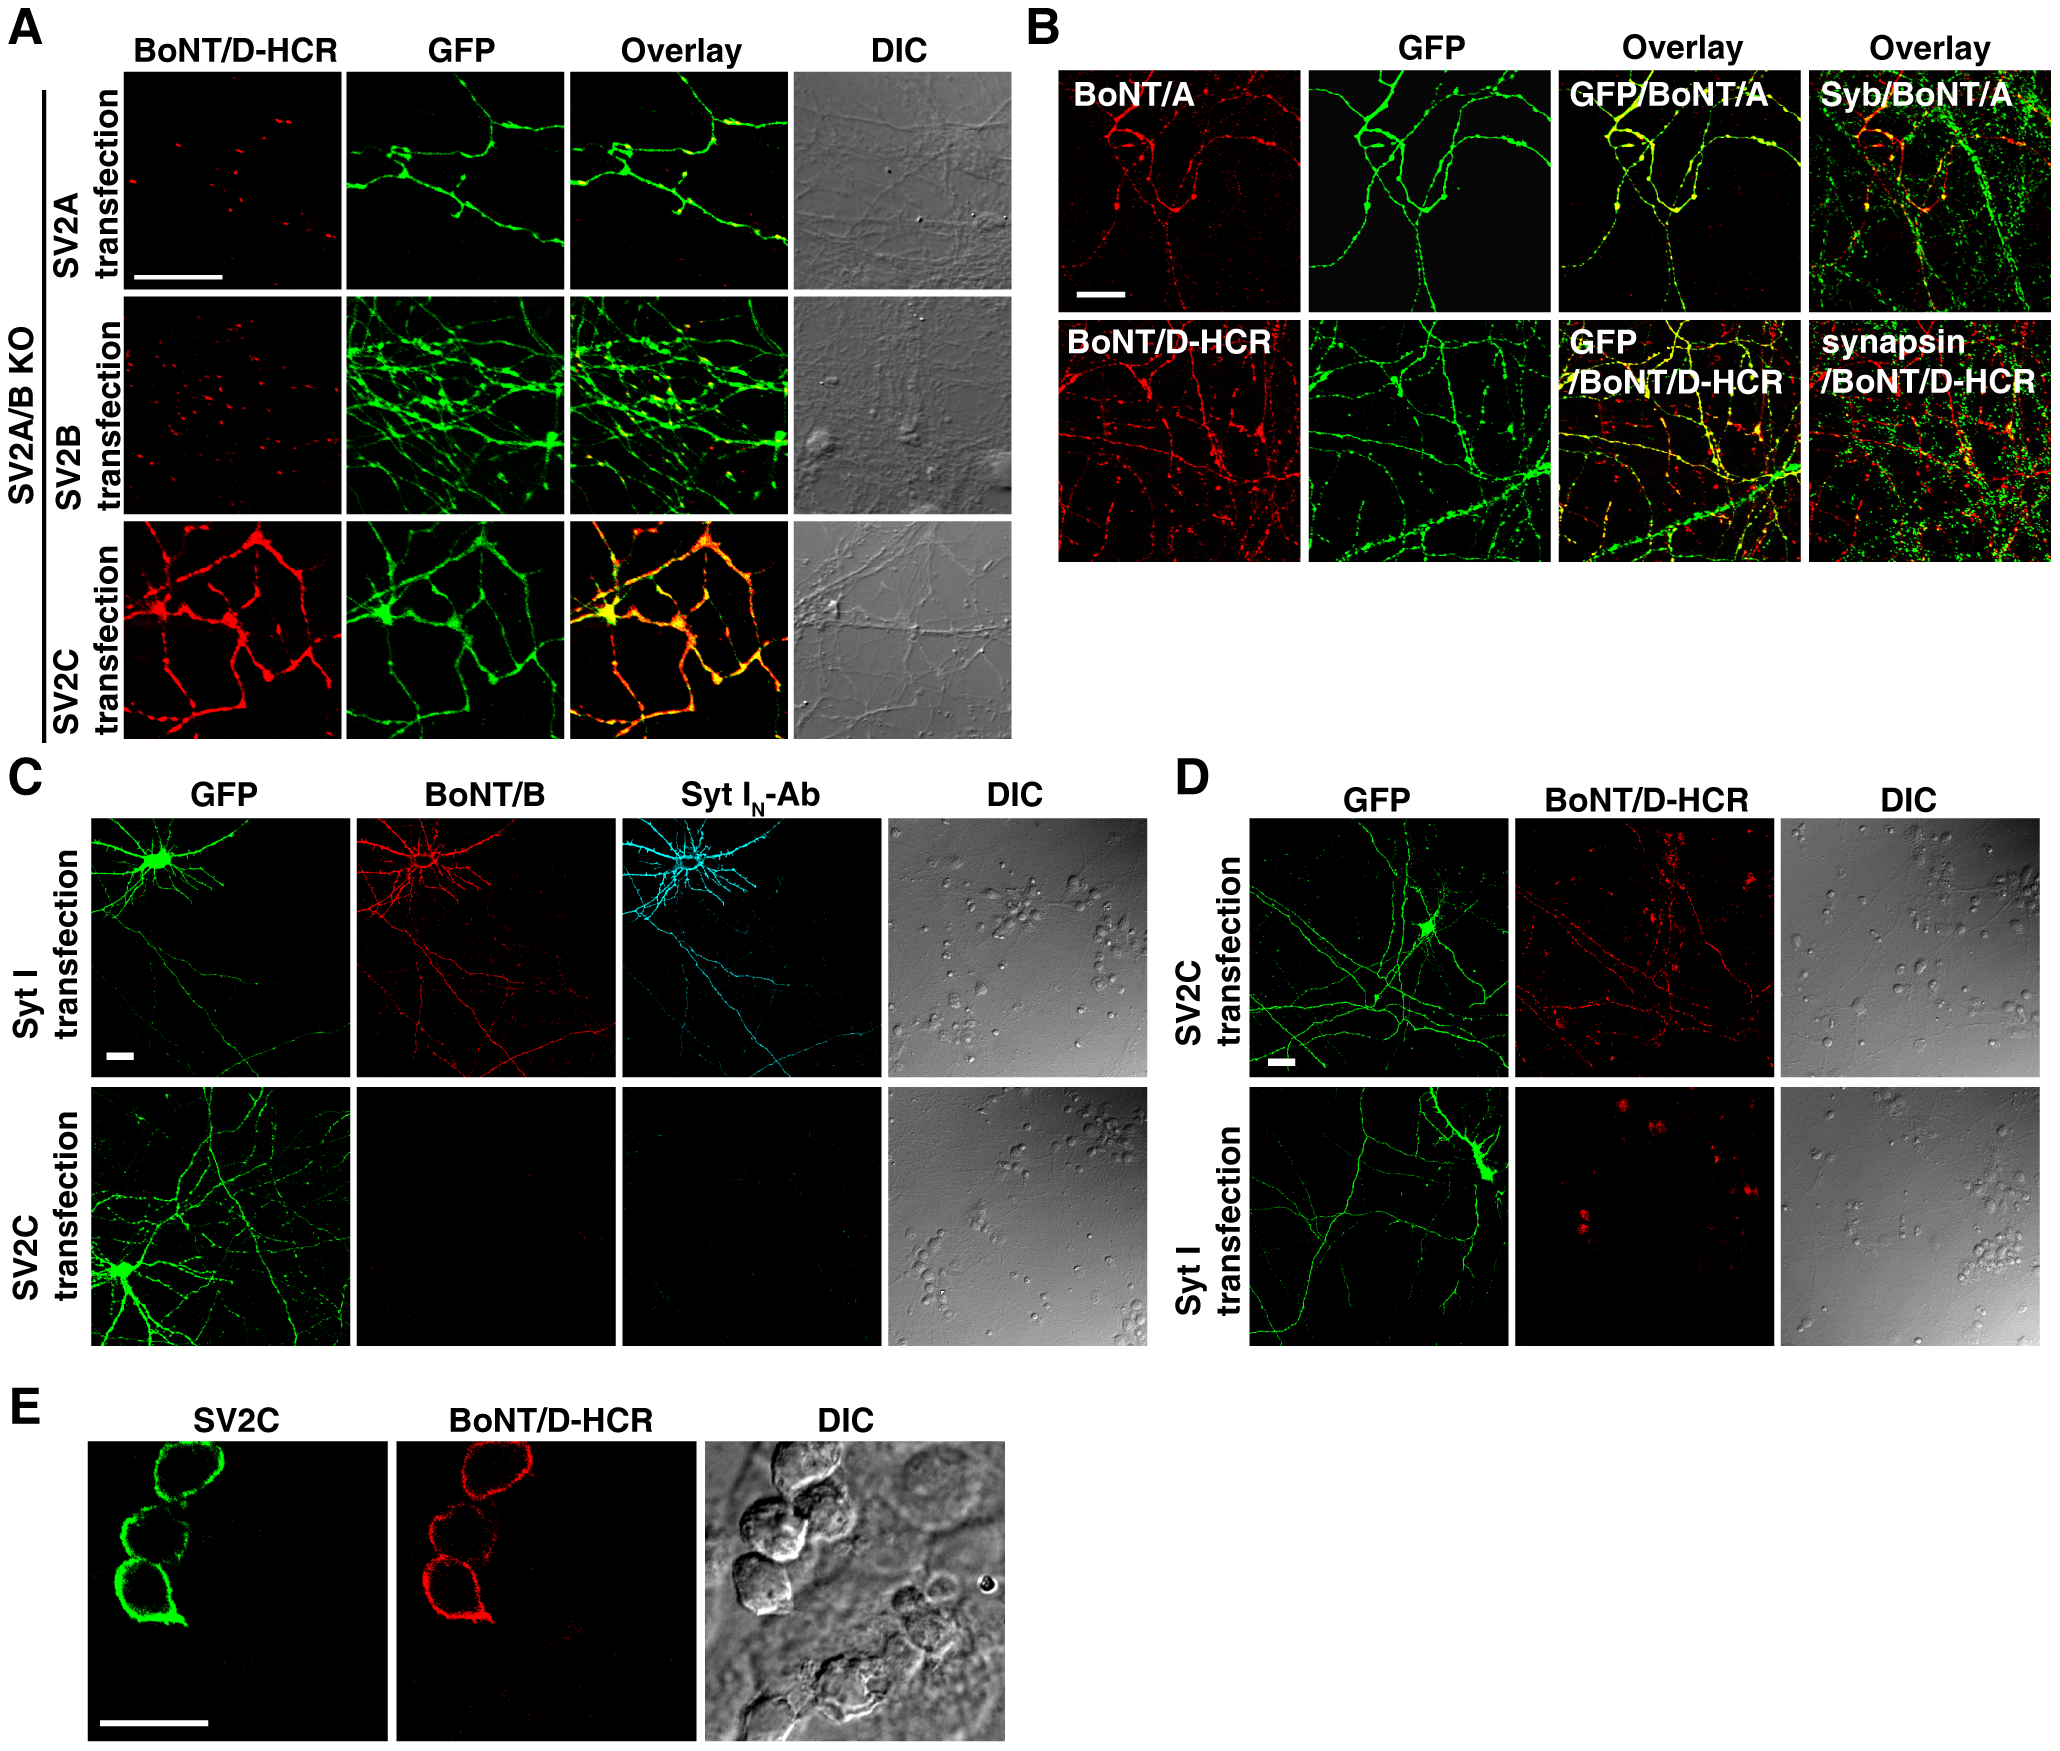 Localization of SV2C to plasma membranes mediated binding of BoNT/D-HCR to the cell surface in both neurons and HEK293FT cells.